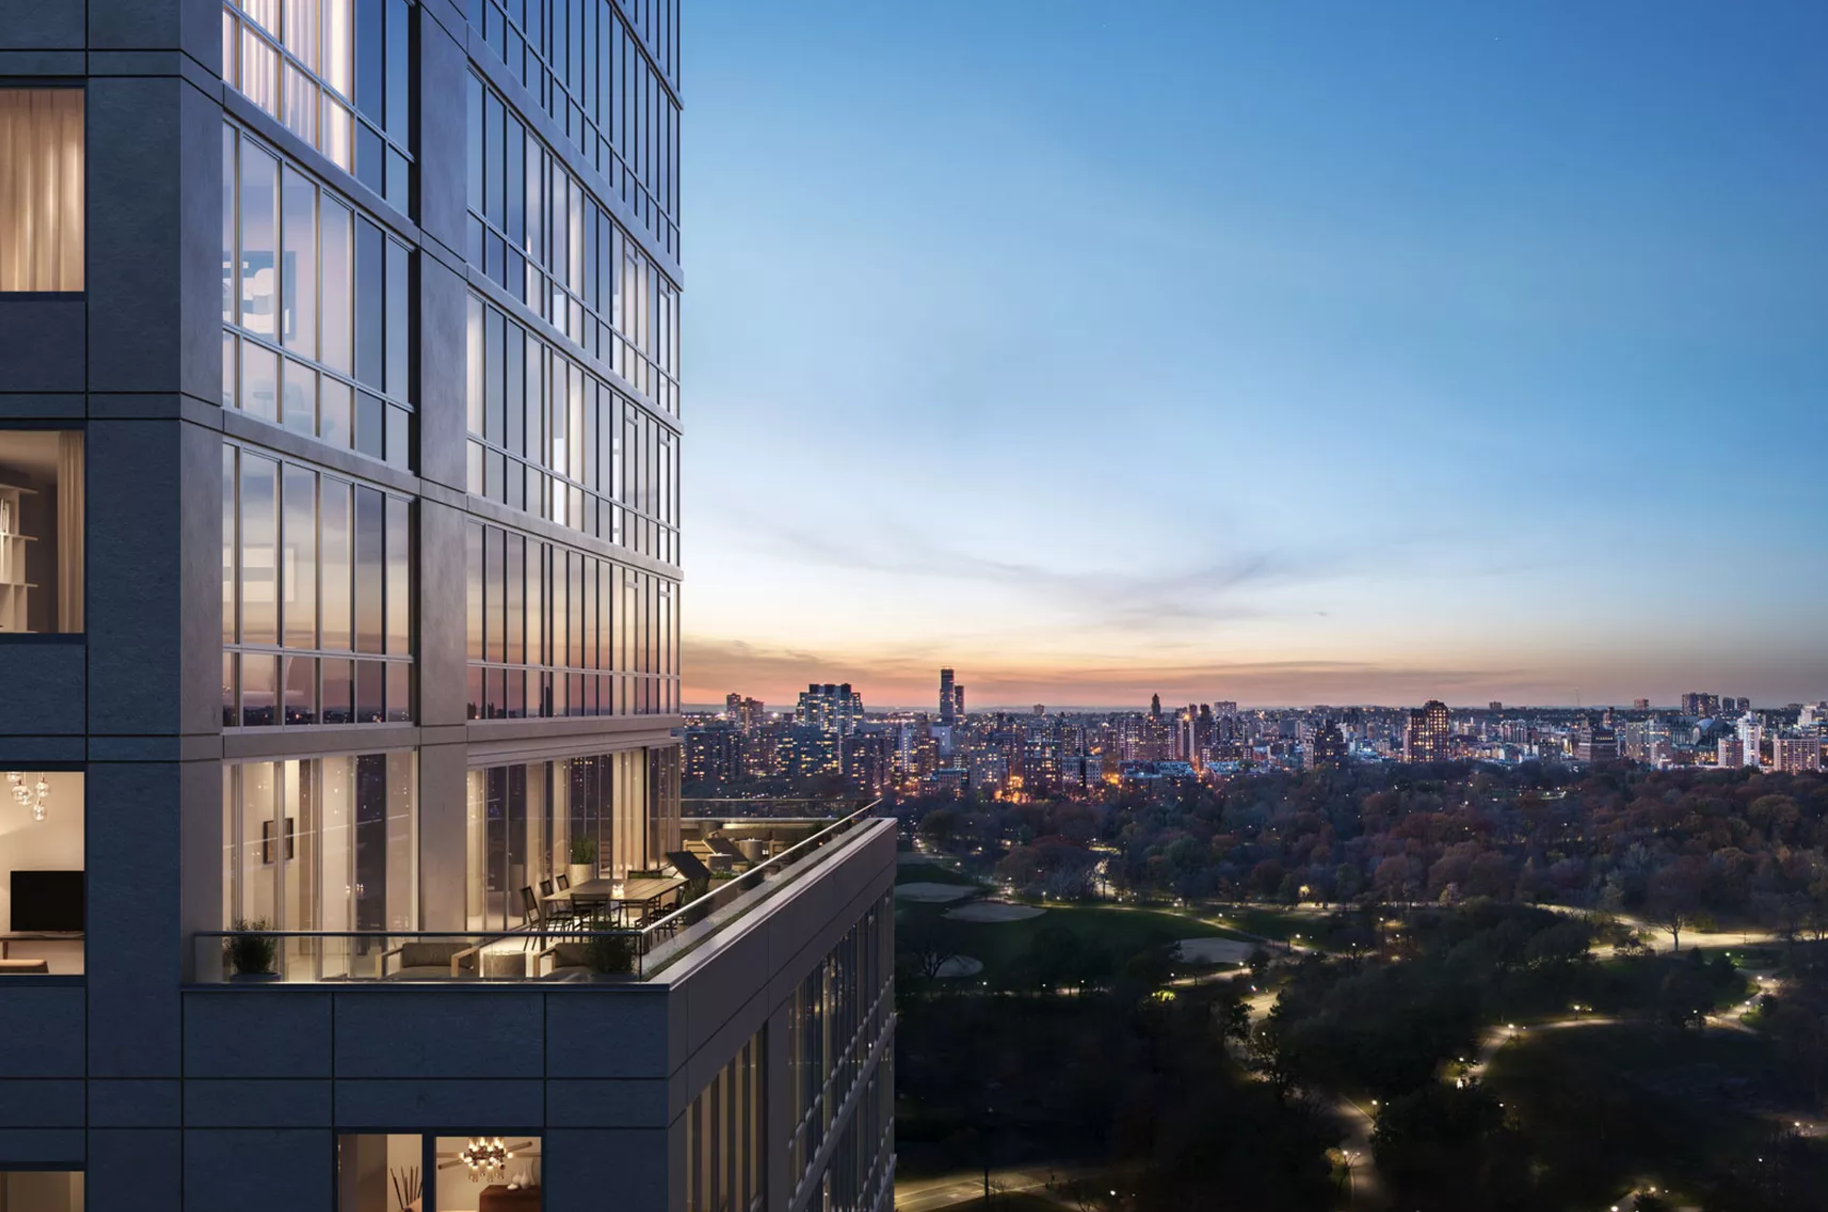 1399 Park Avenue, rendering by Volley